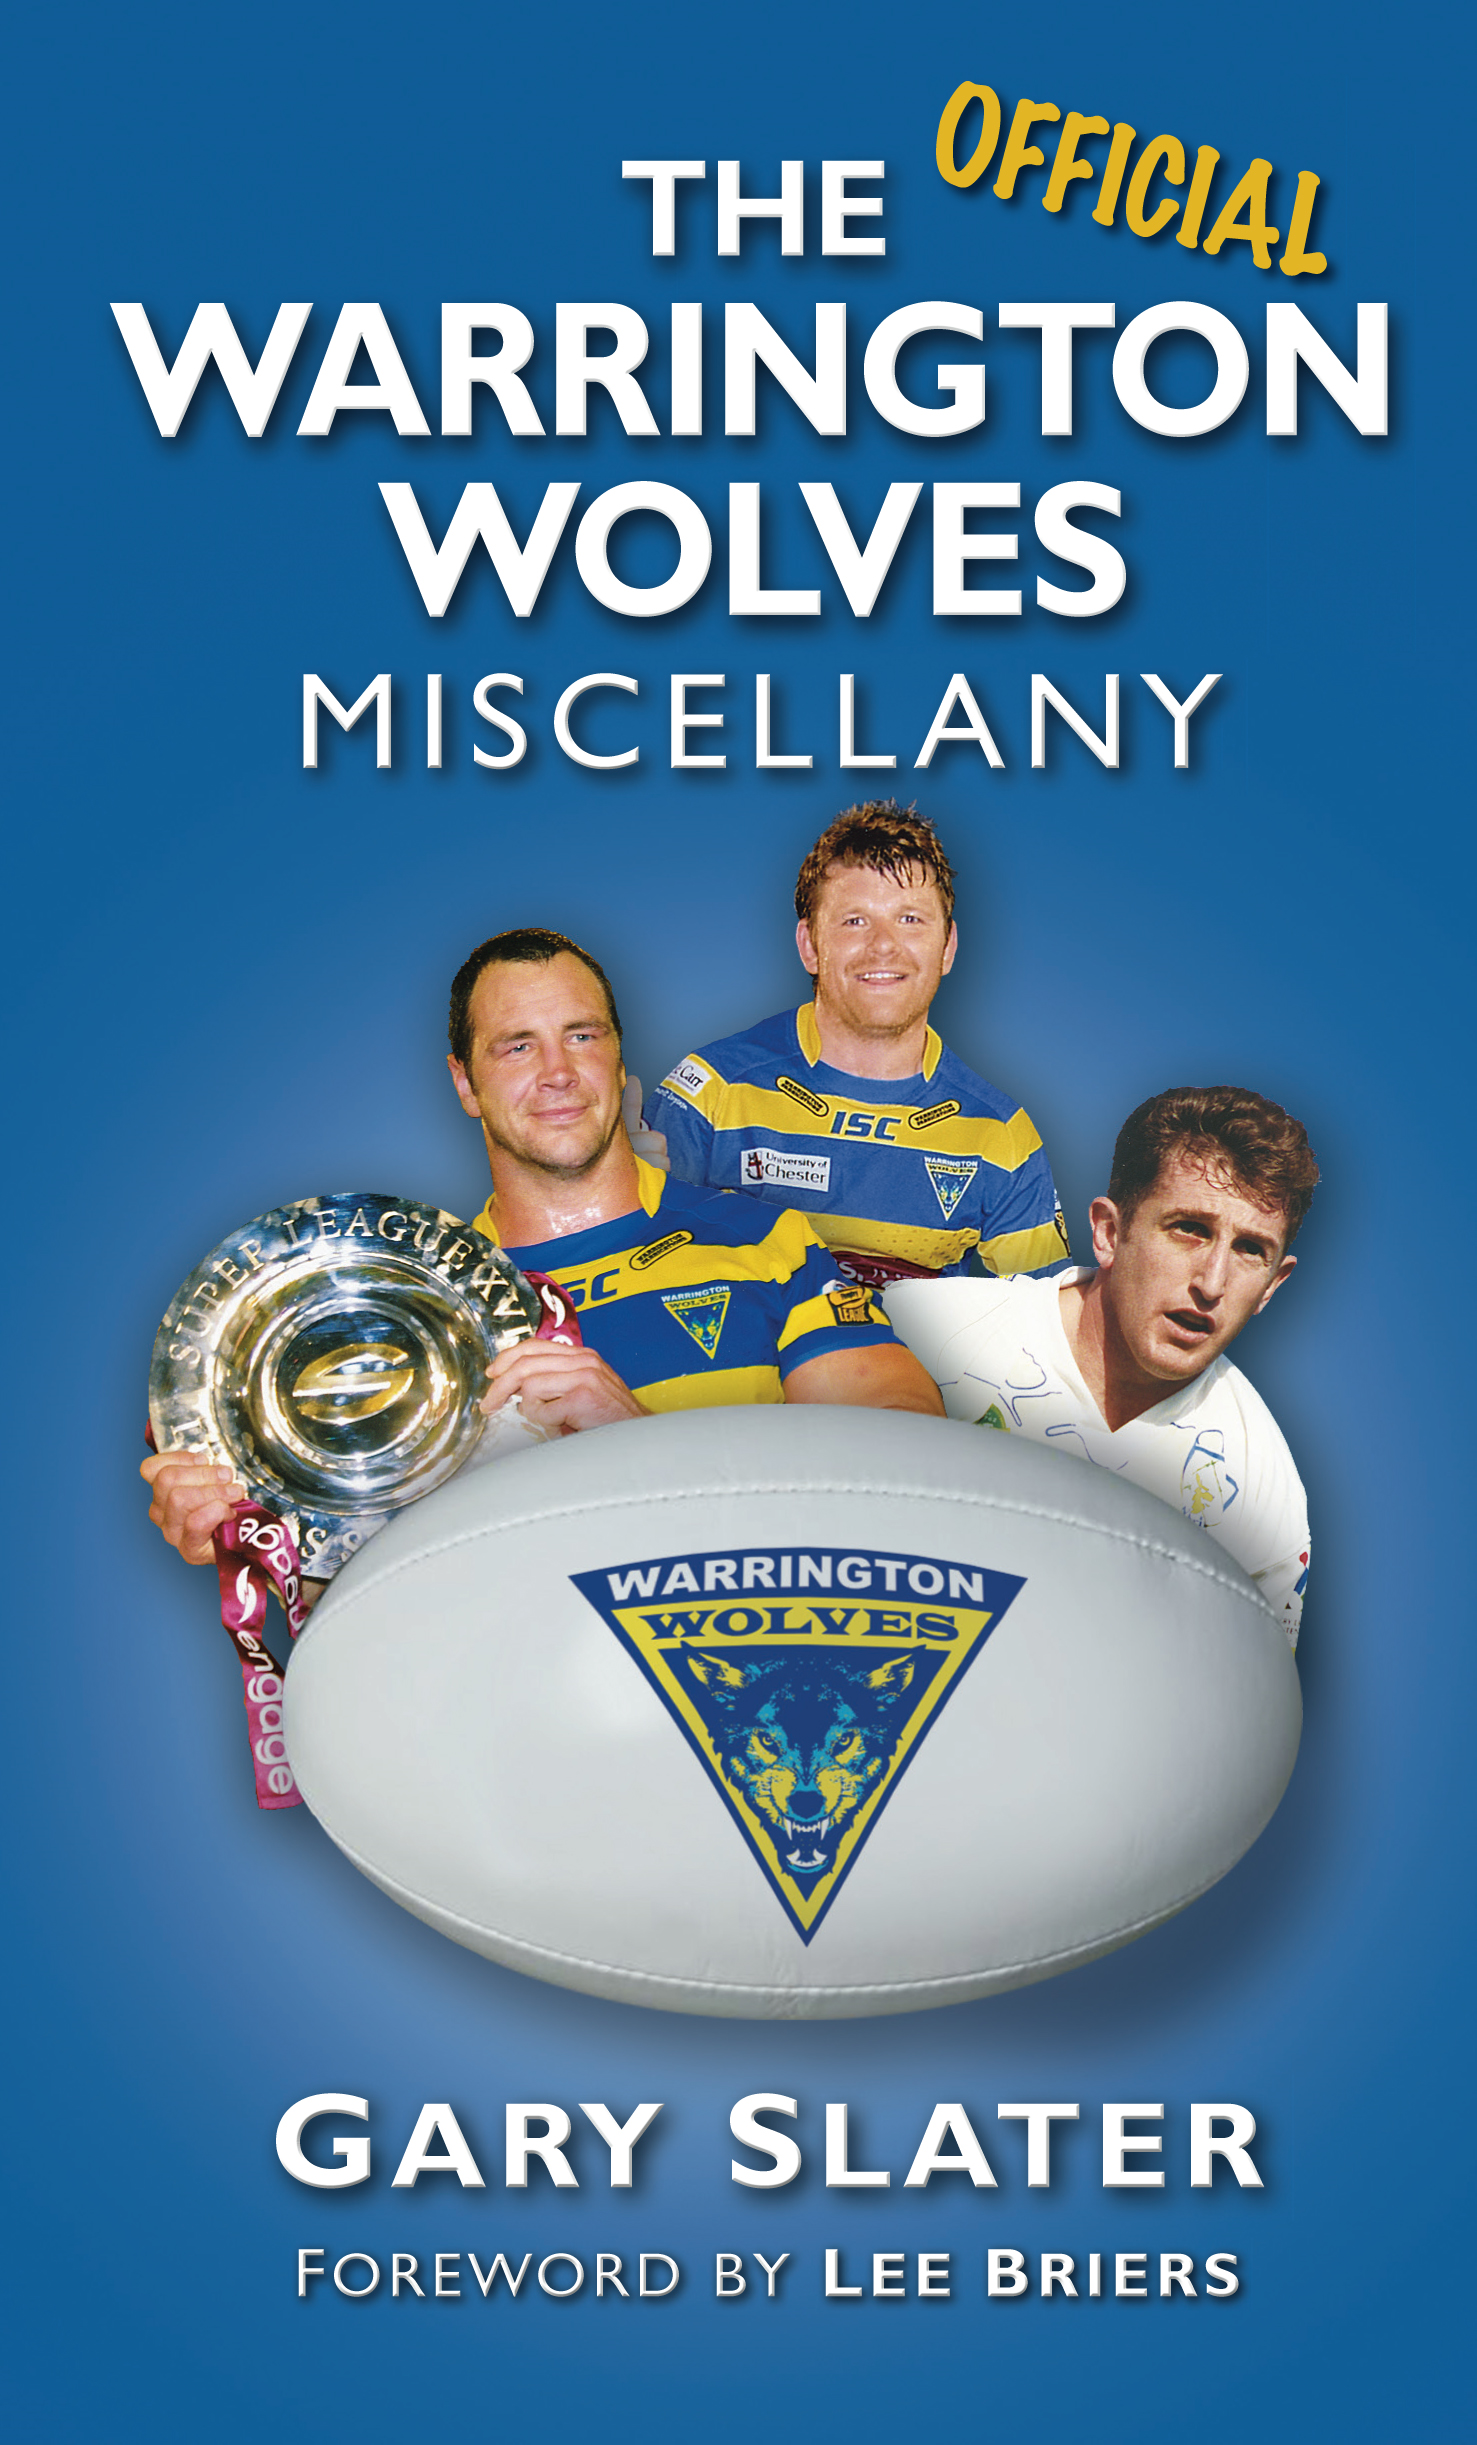 The Warrington Wolves Miscellany